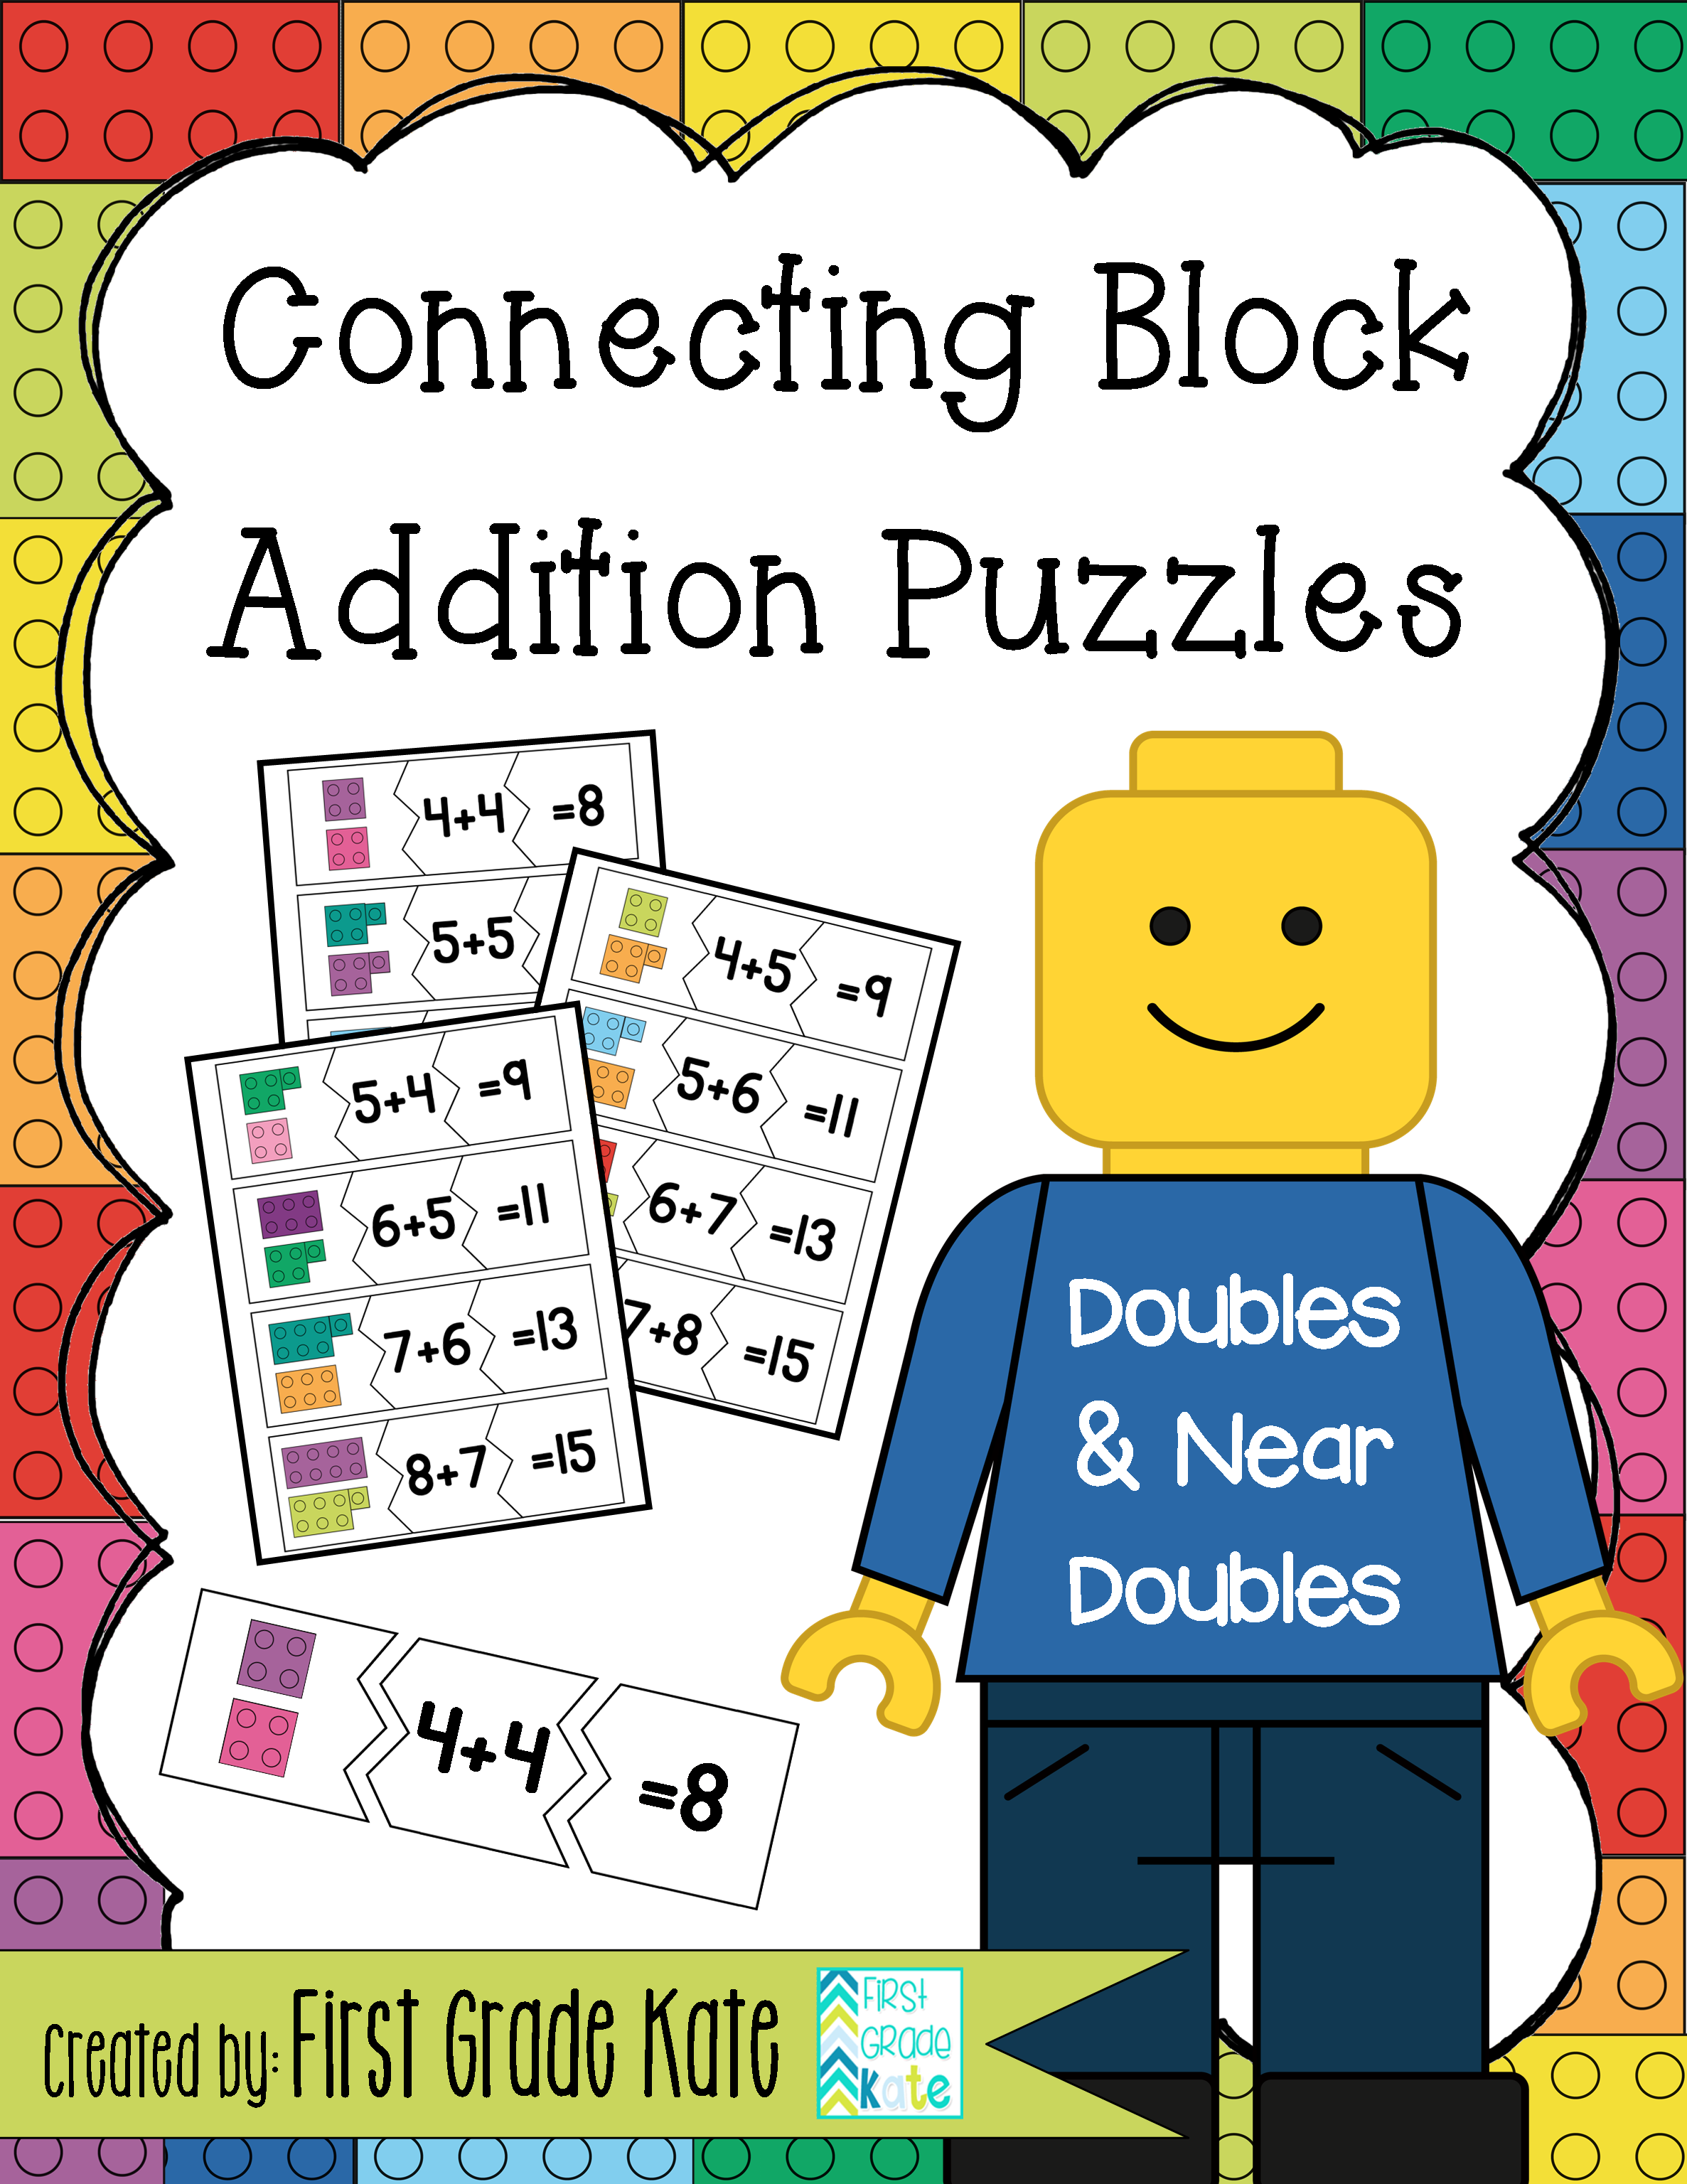 Addition Puzzles For Doubles Amp Near Doubles